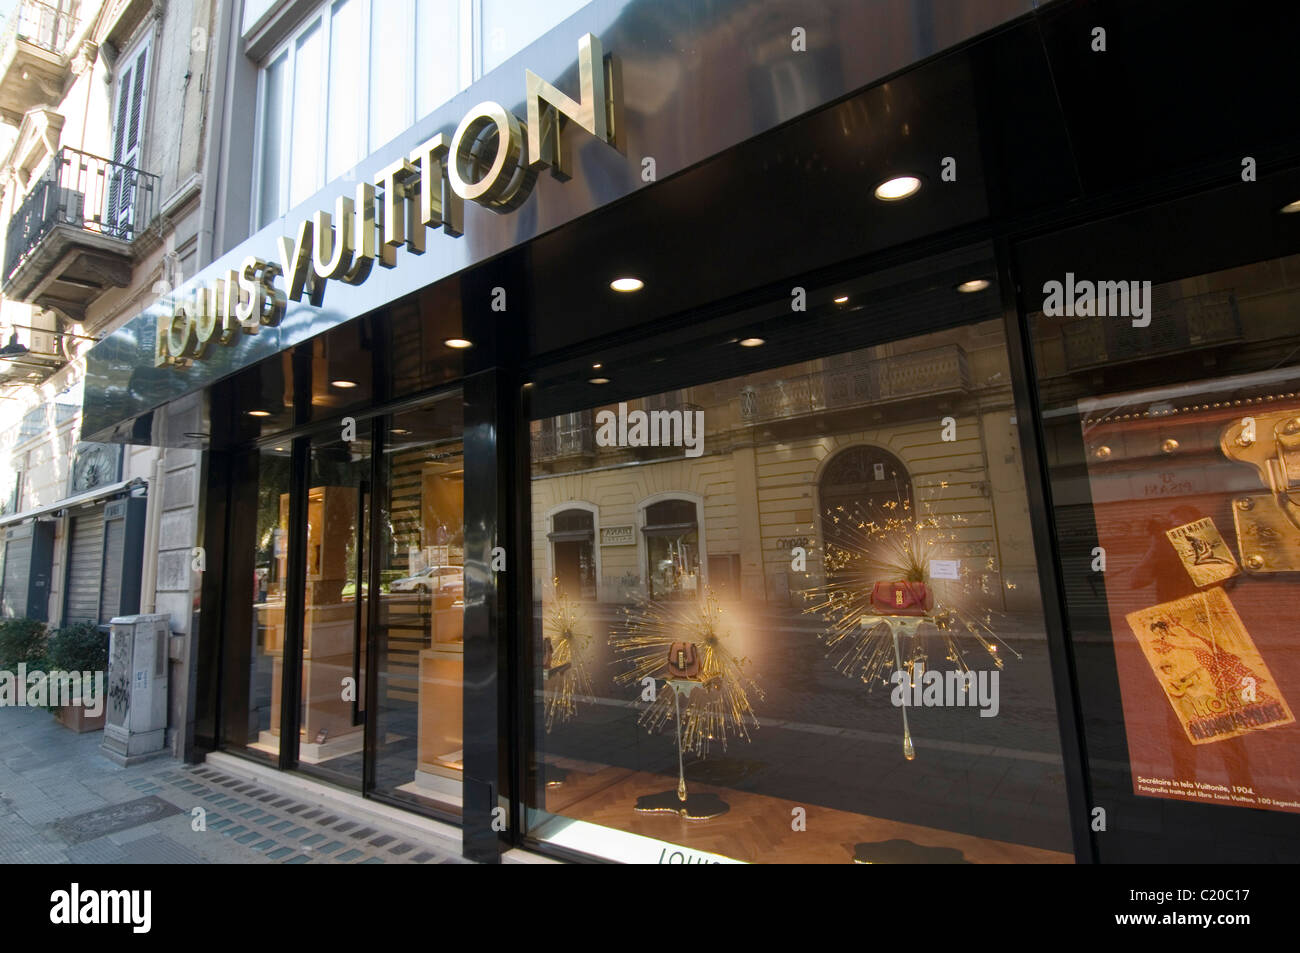 louis vuitton designer clothes shop outlet shops logo. Black Bedroom Furniture Sets. Home Design Ideas